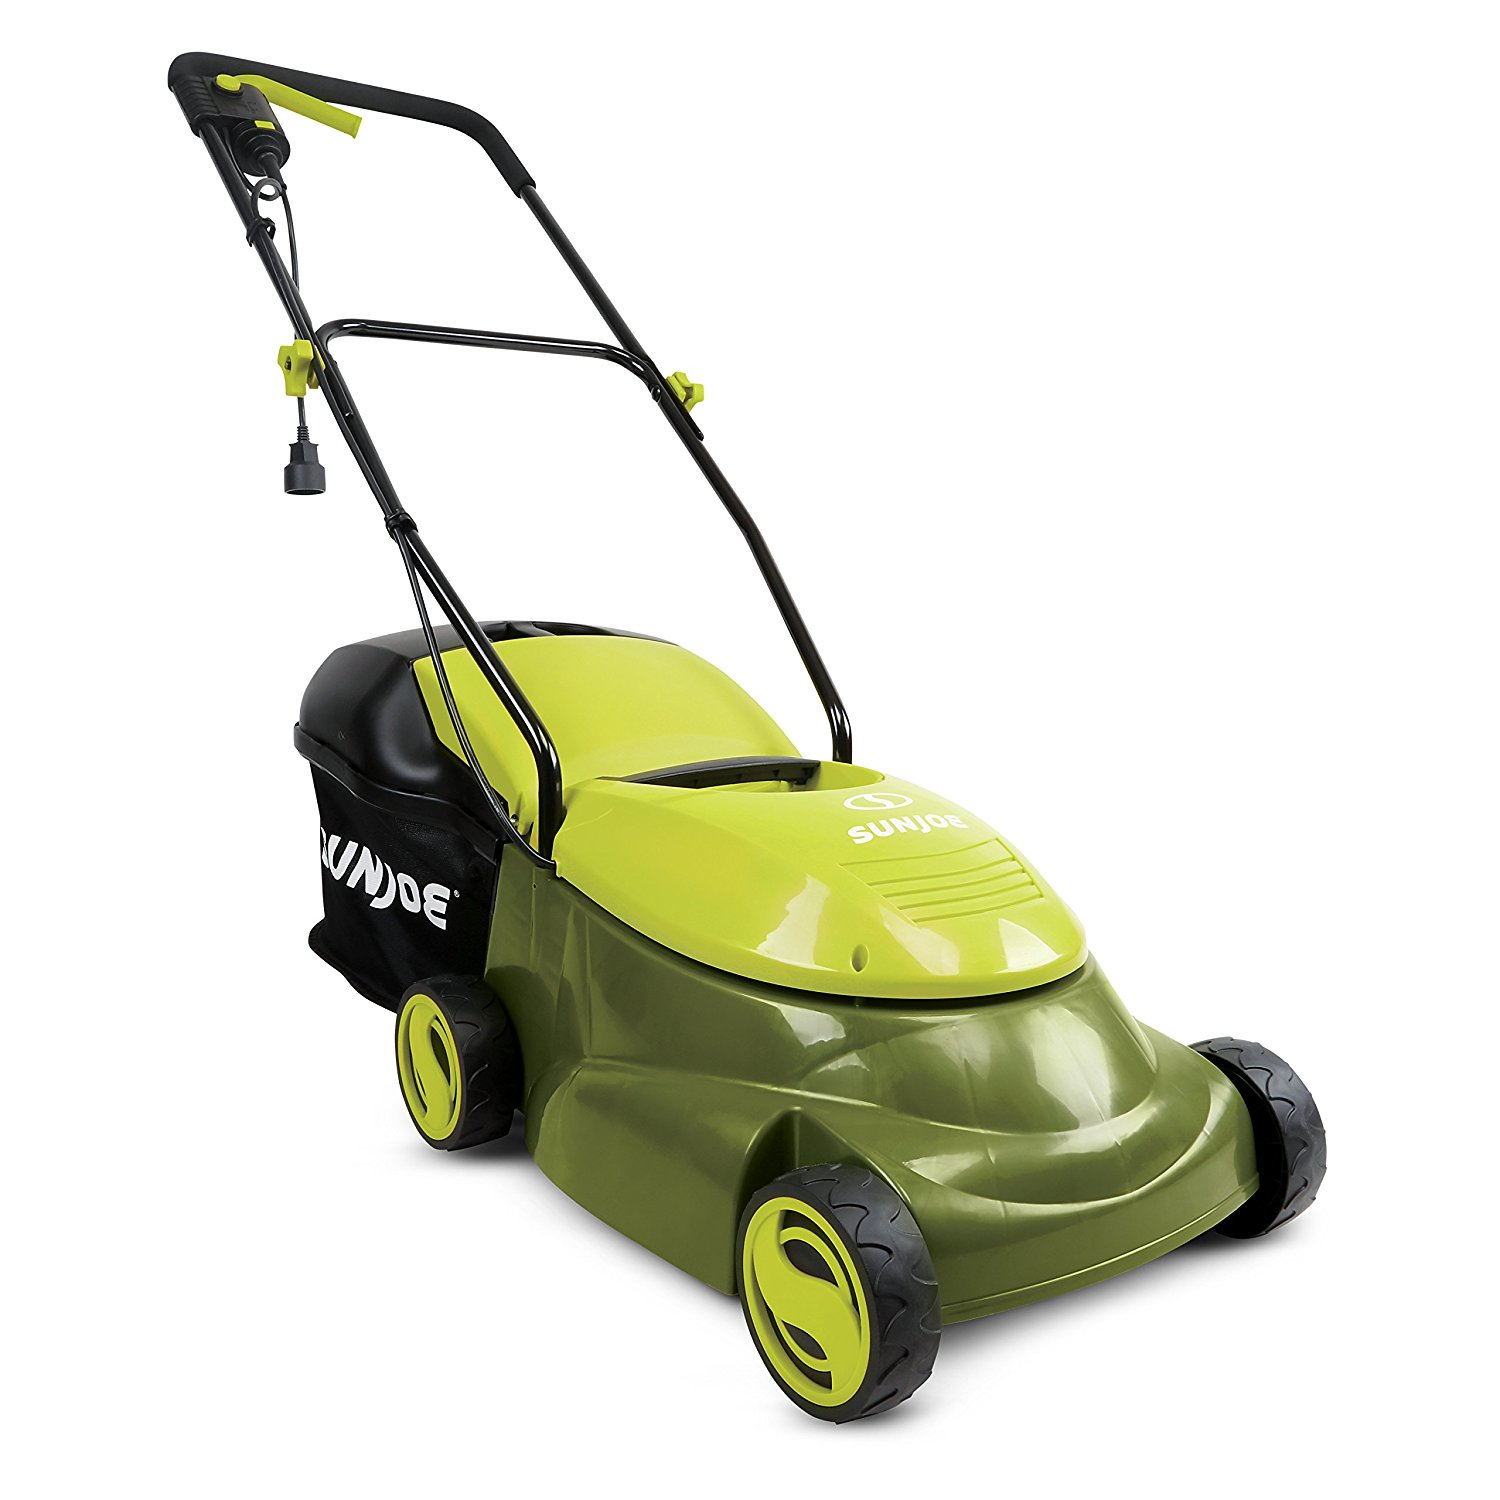 Sun Joe 14 Inch Electric Lawn Mower